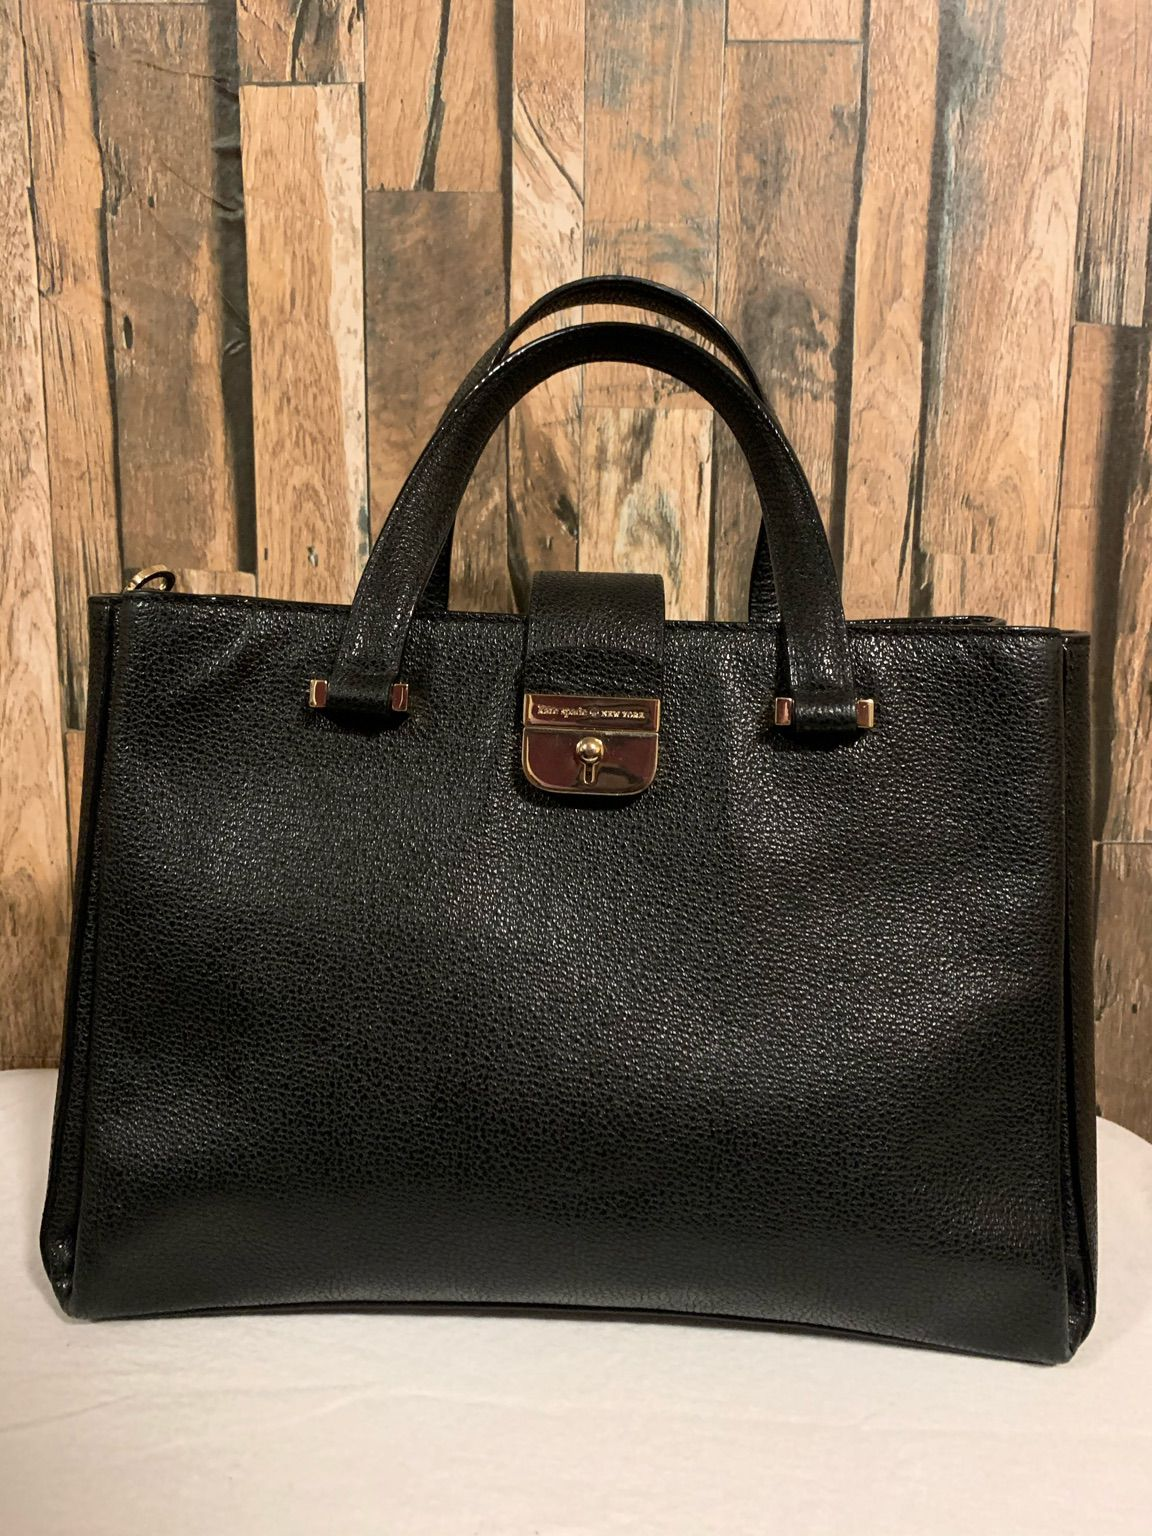 kate spade New York 2-way Handbag